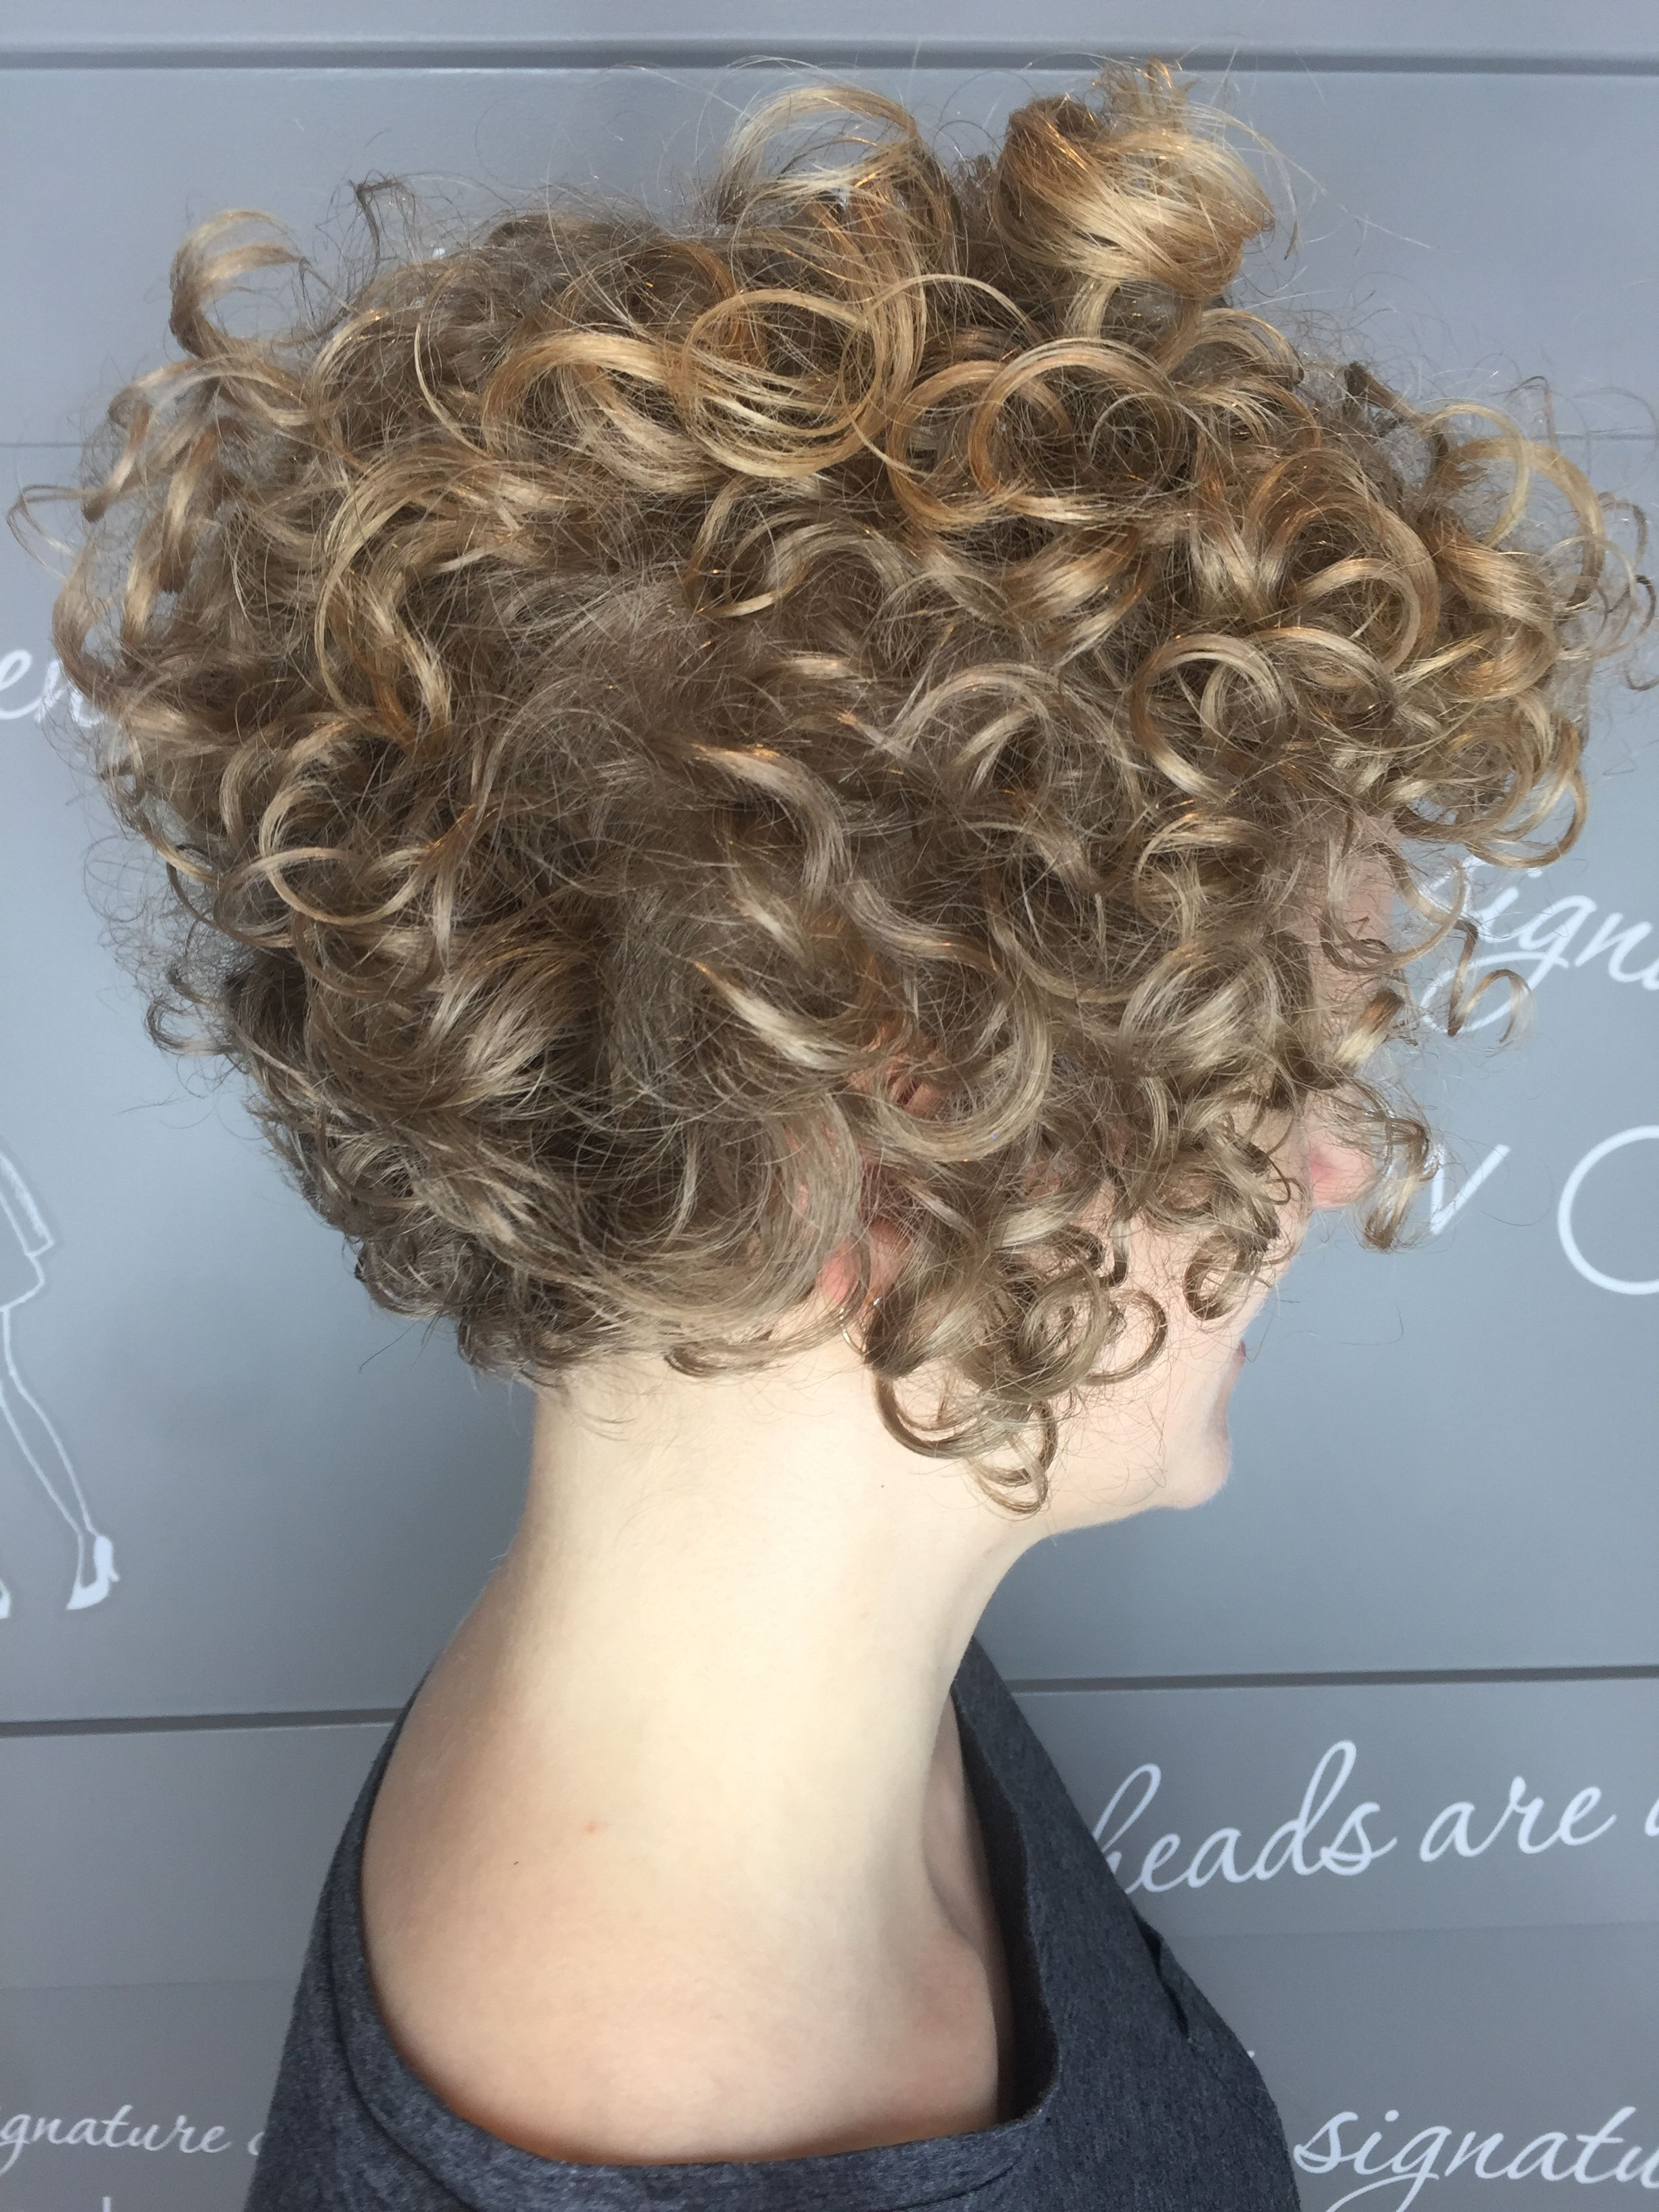 Pin by Rebecca Temari on hairstyles over 50 Pinterest